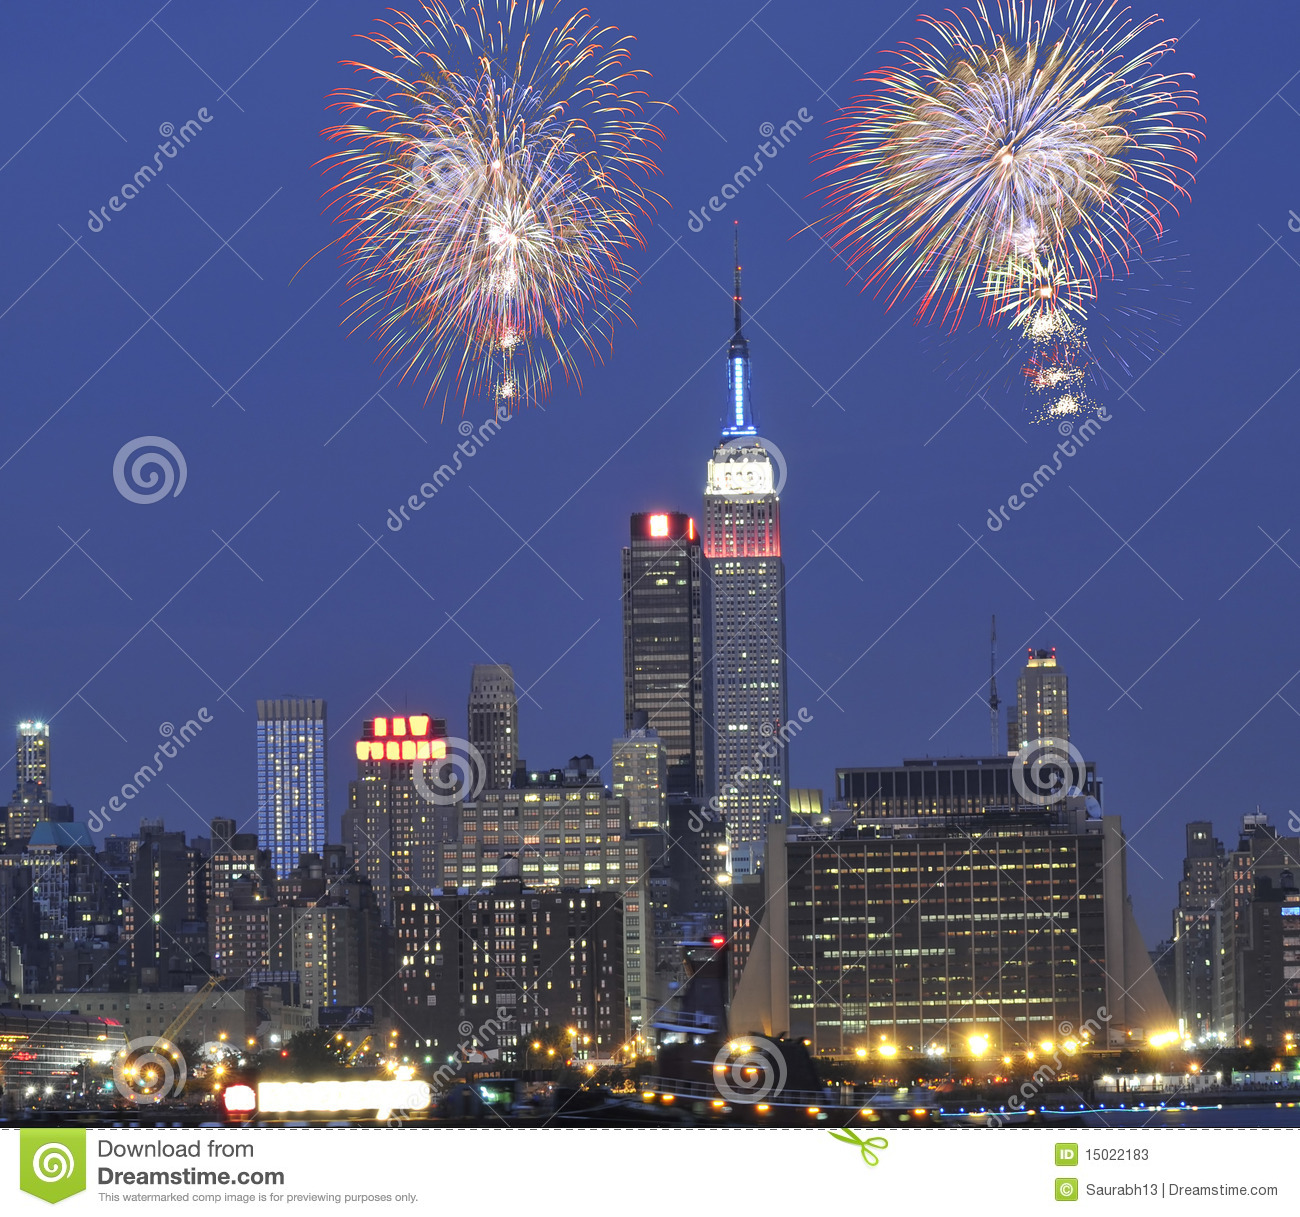 July 4th fireworks in New York City